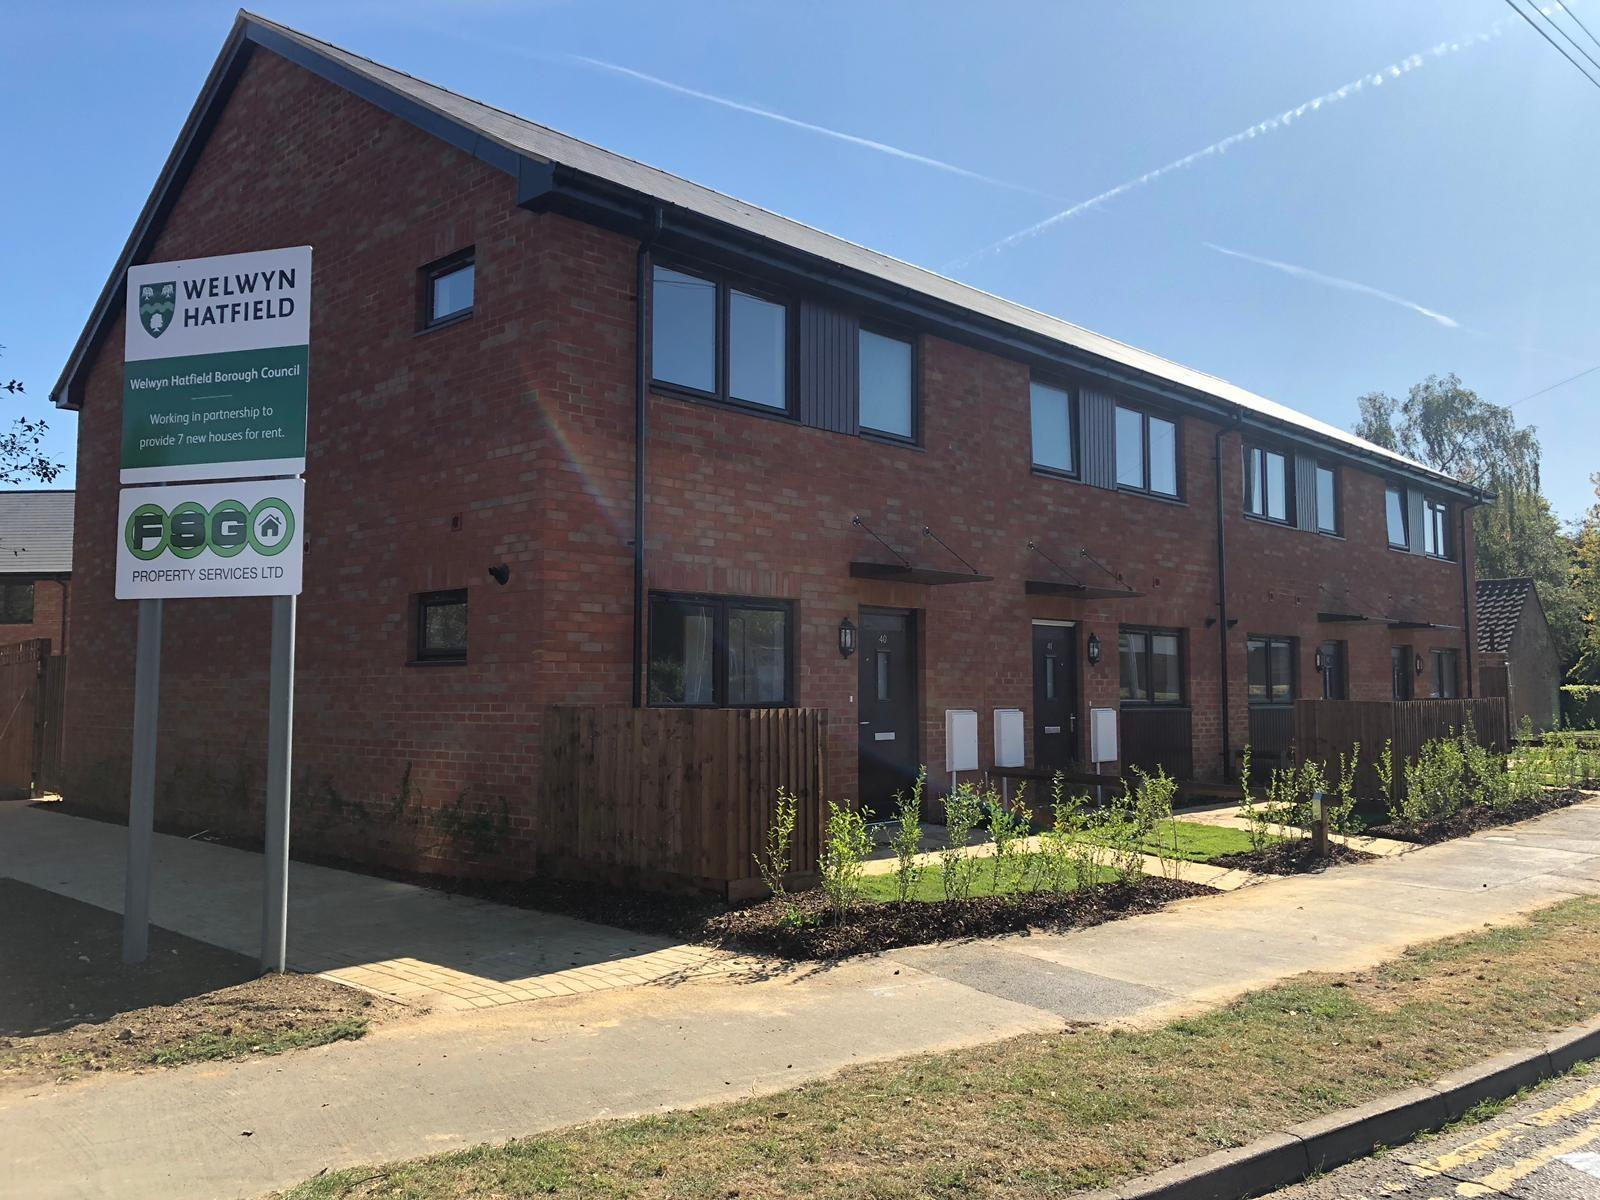 Plans for new housing company set for approval